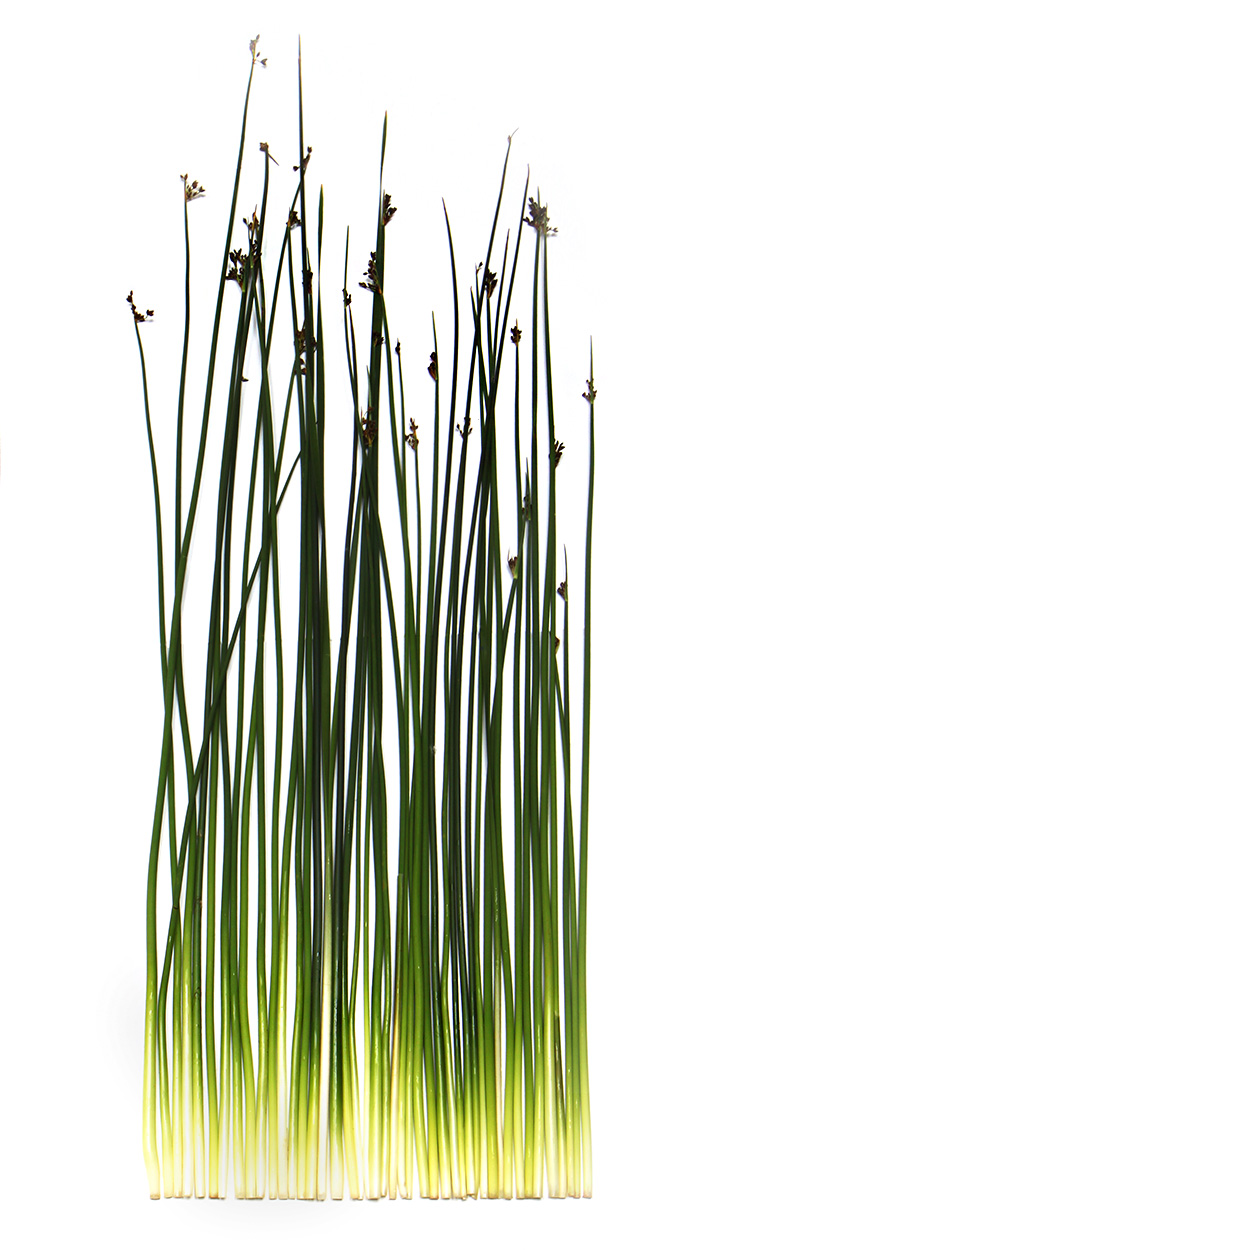 sedges, reeds, and rushes